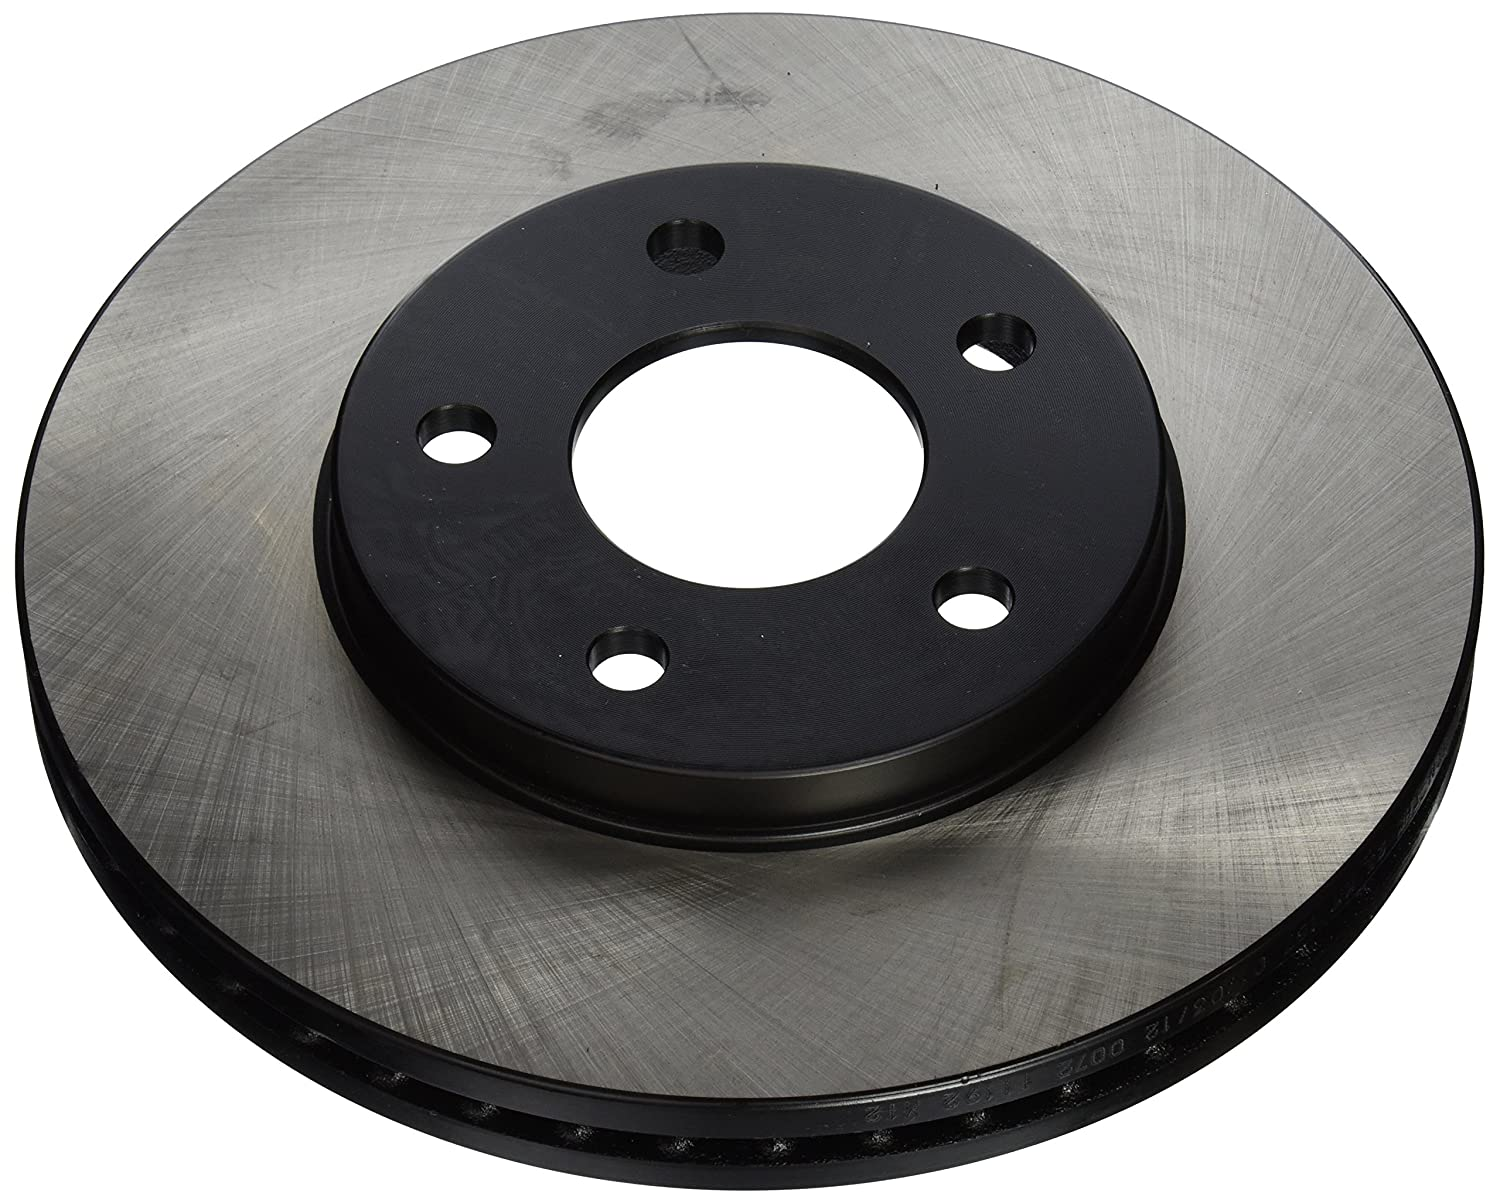 Centric Parts 120.44146 Premium Brake Rotor with E-Coating